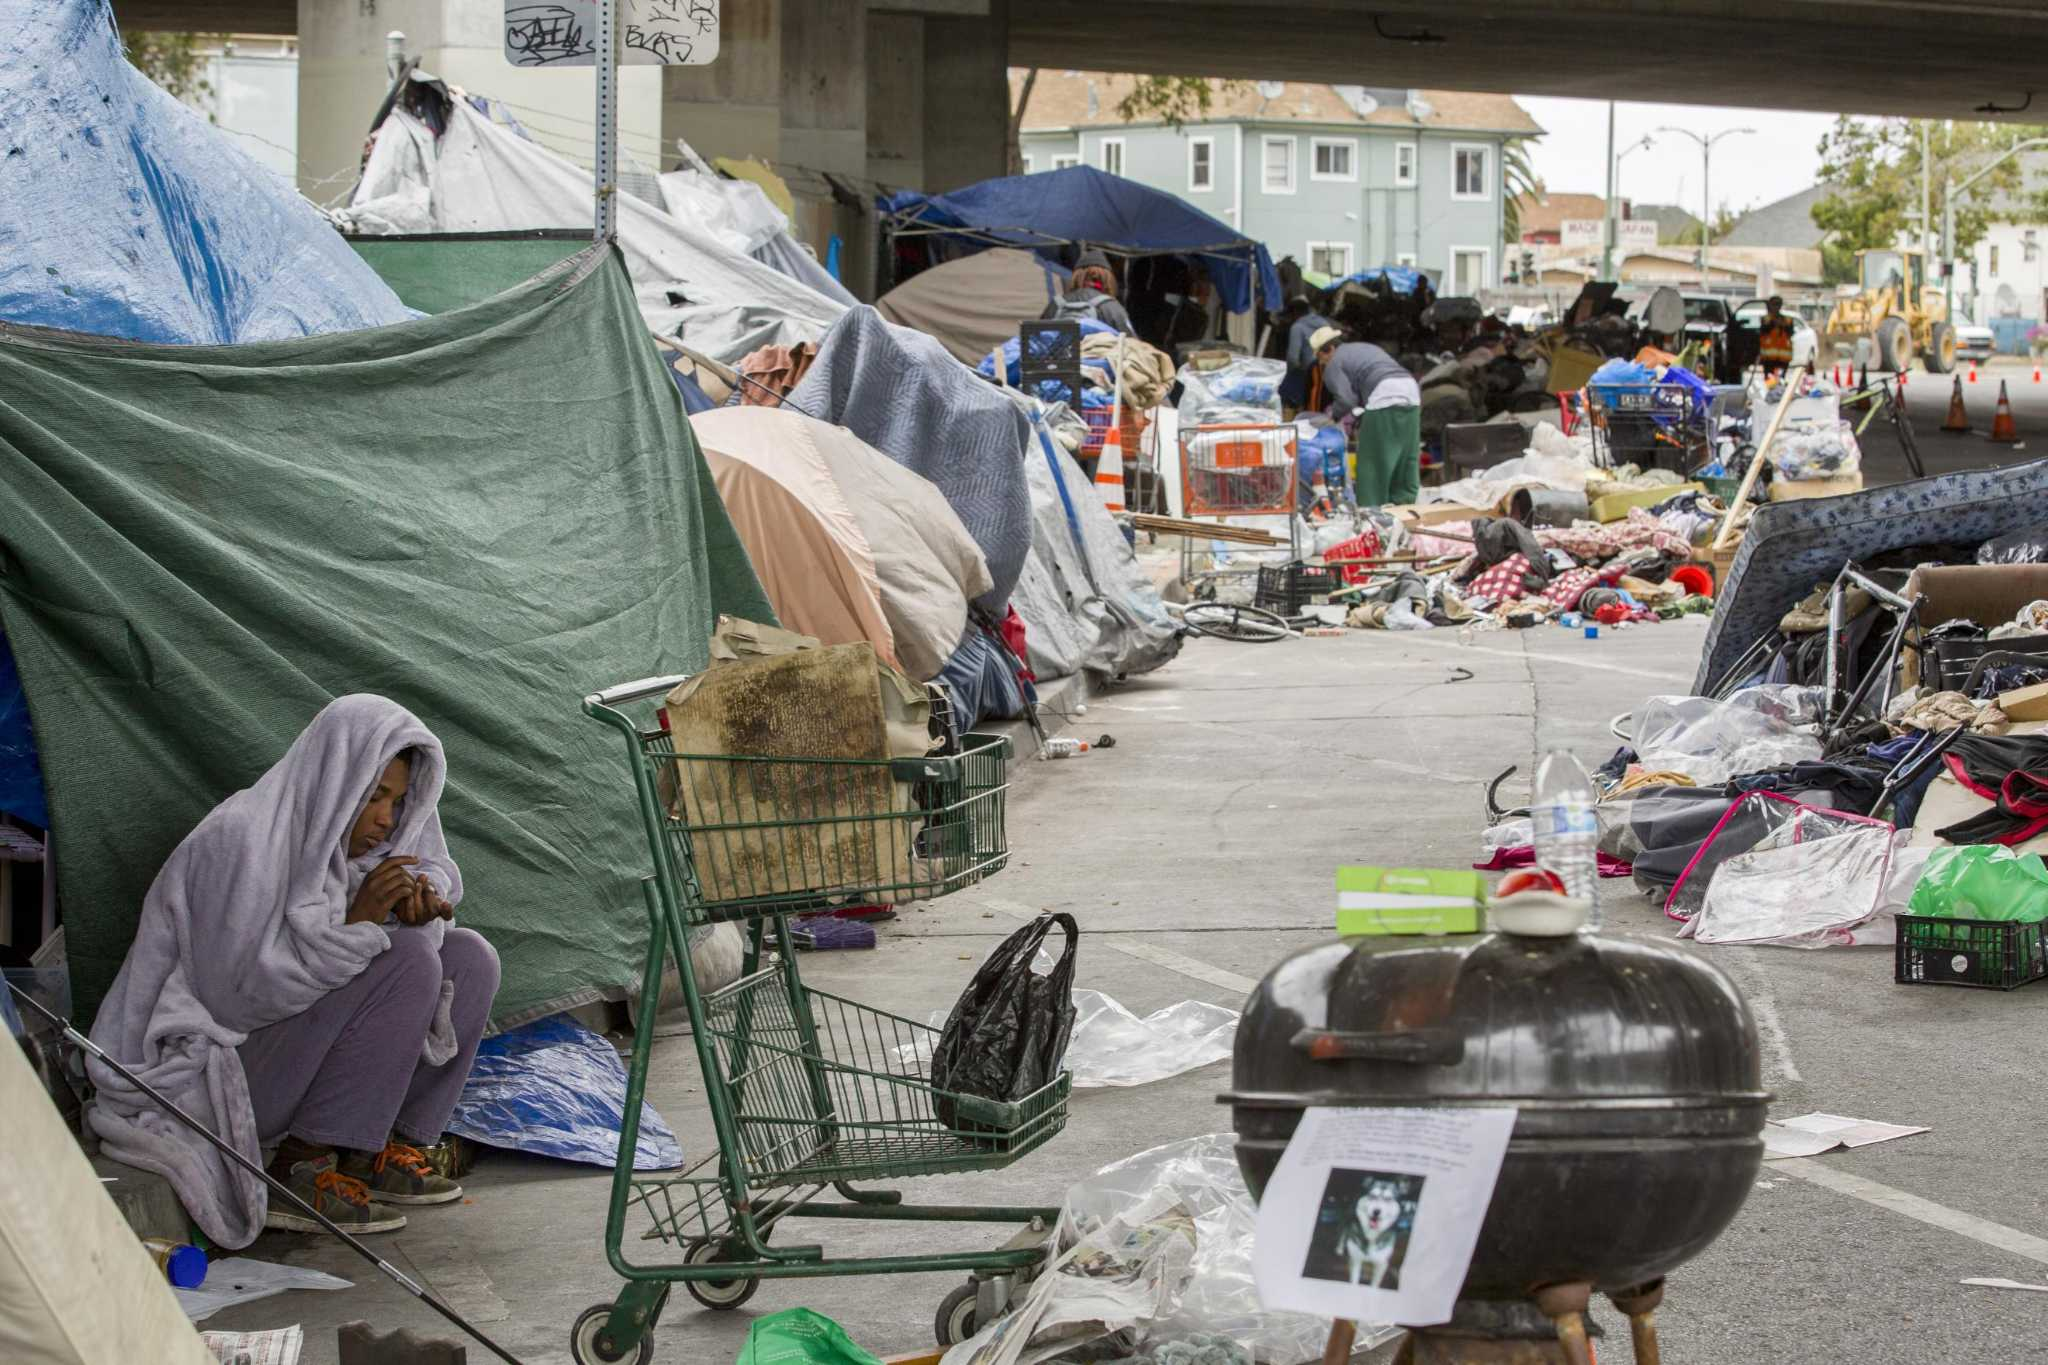 Oakland to try 'safe haven' camps for homeless ...